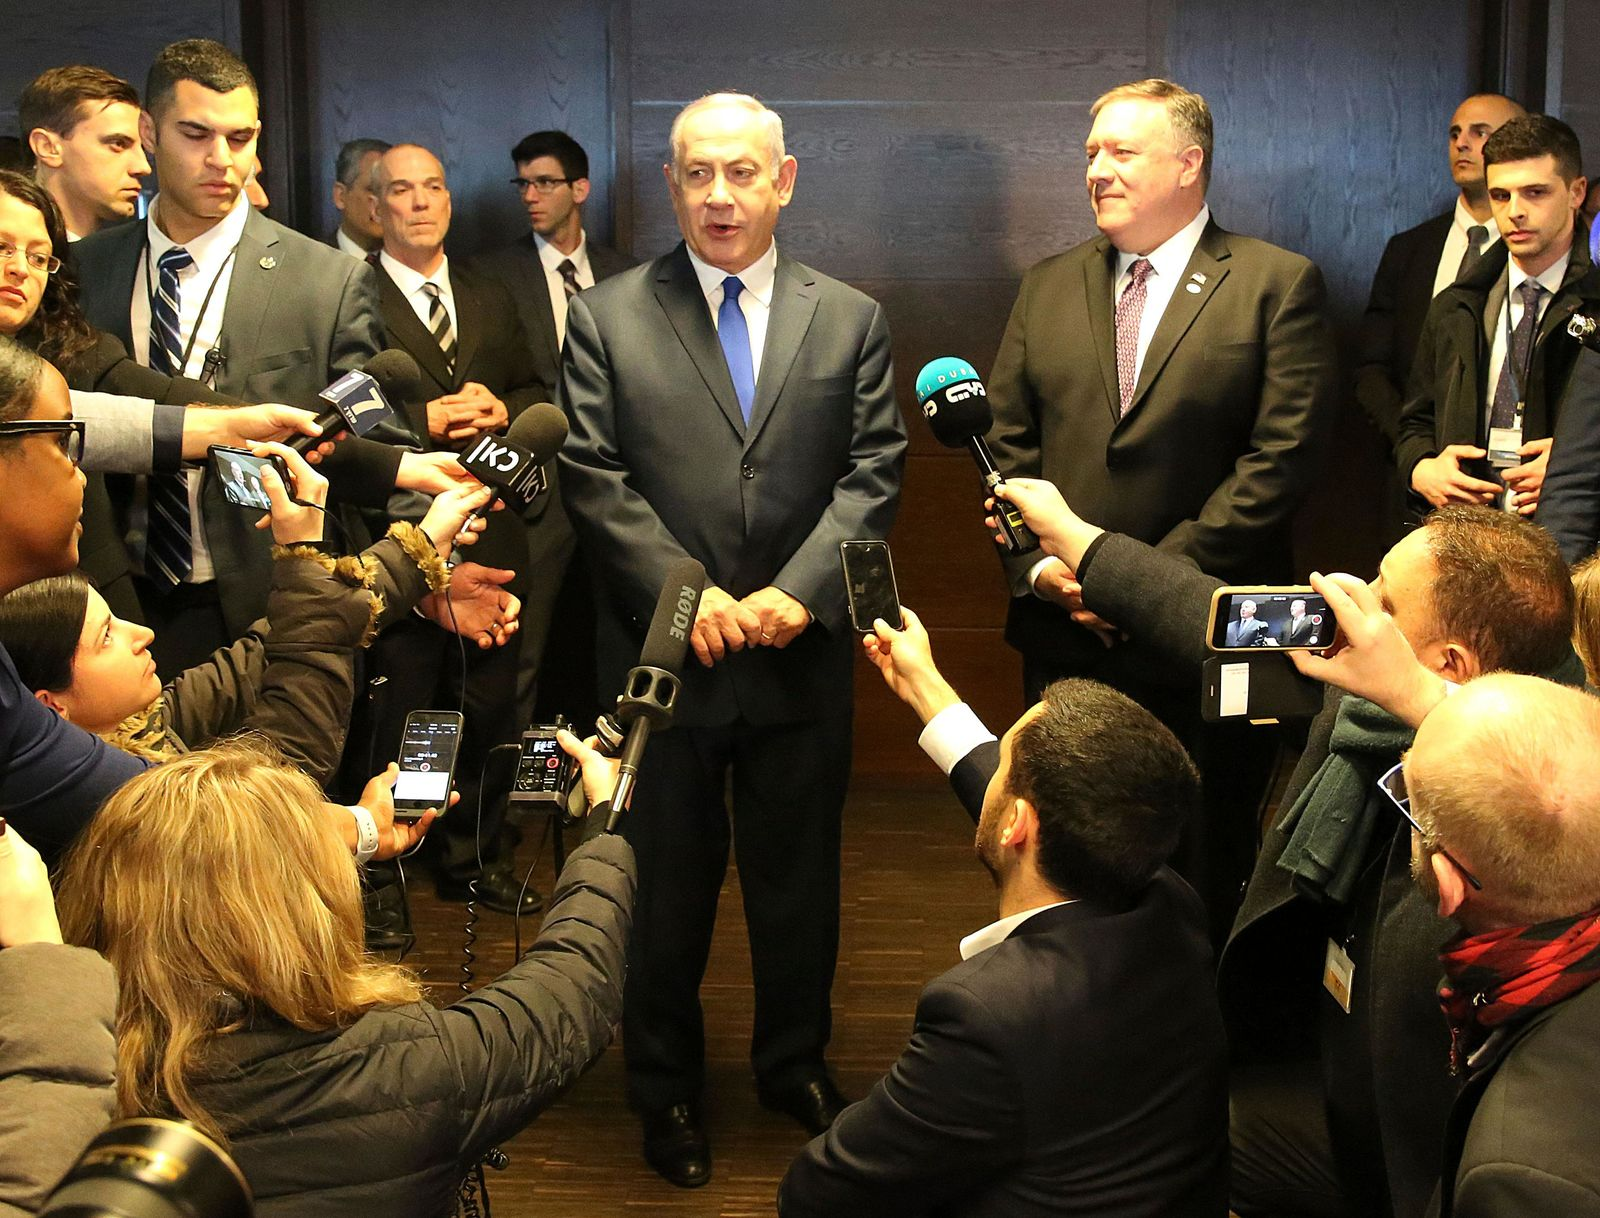 Israeli Prime Minister Benjamin Netanyahu, center left, and US Secretary of State Mike Pompeo, center right, talk to the press on the sidelines of a session at the conference on Peace and Security in the Middle East in Warsaw, Poland, Thursday, Feb. 14, 2019. (AP Photo/Czarek Sokolowski)